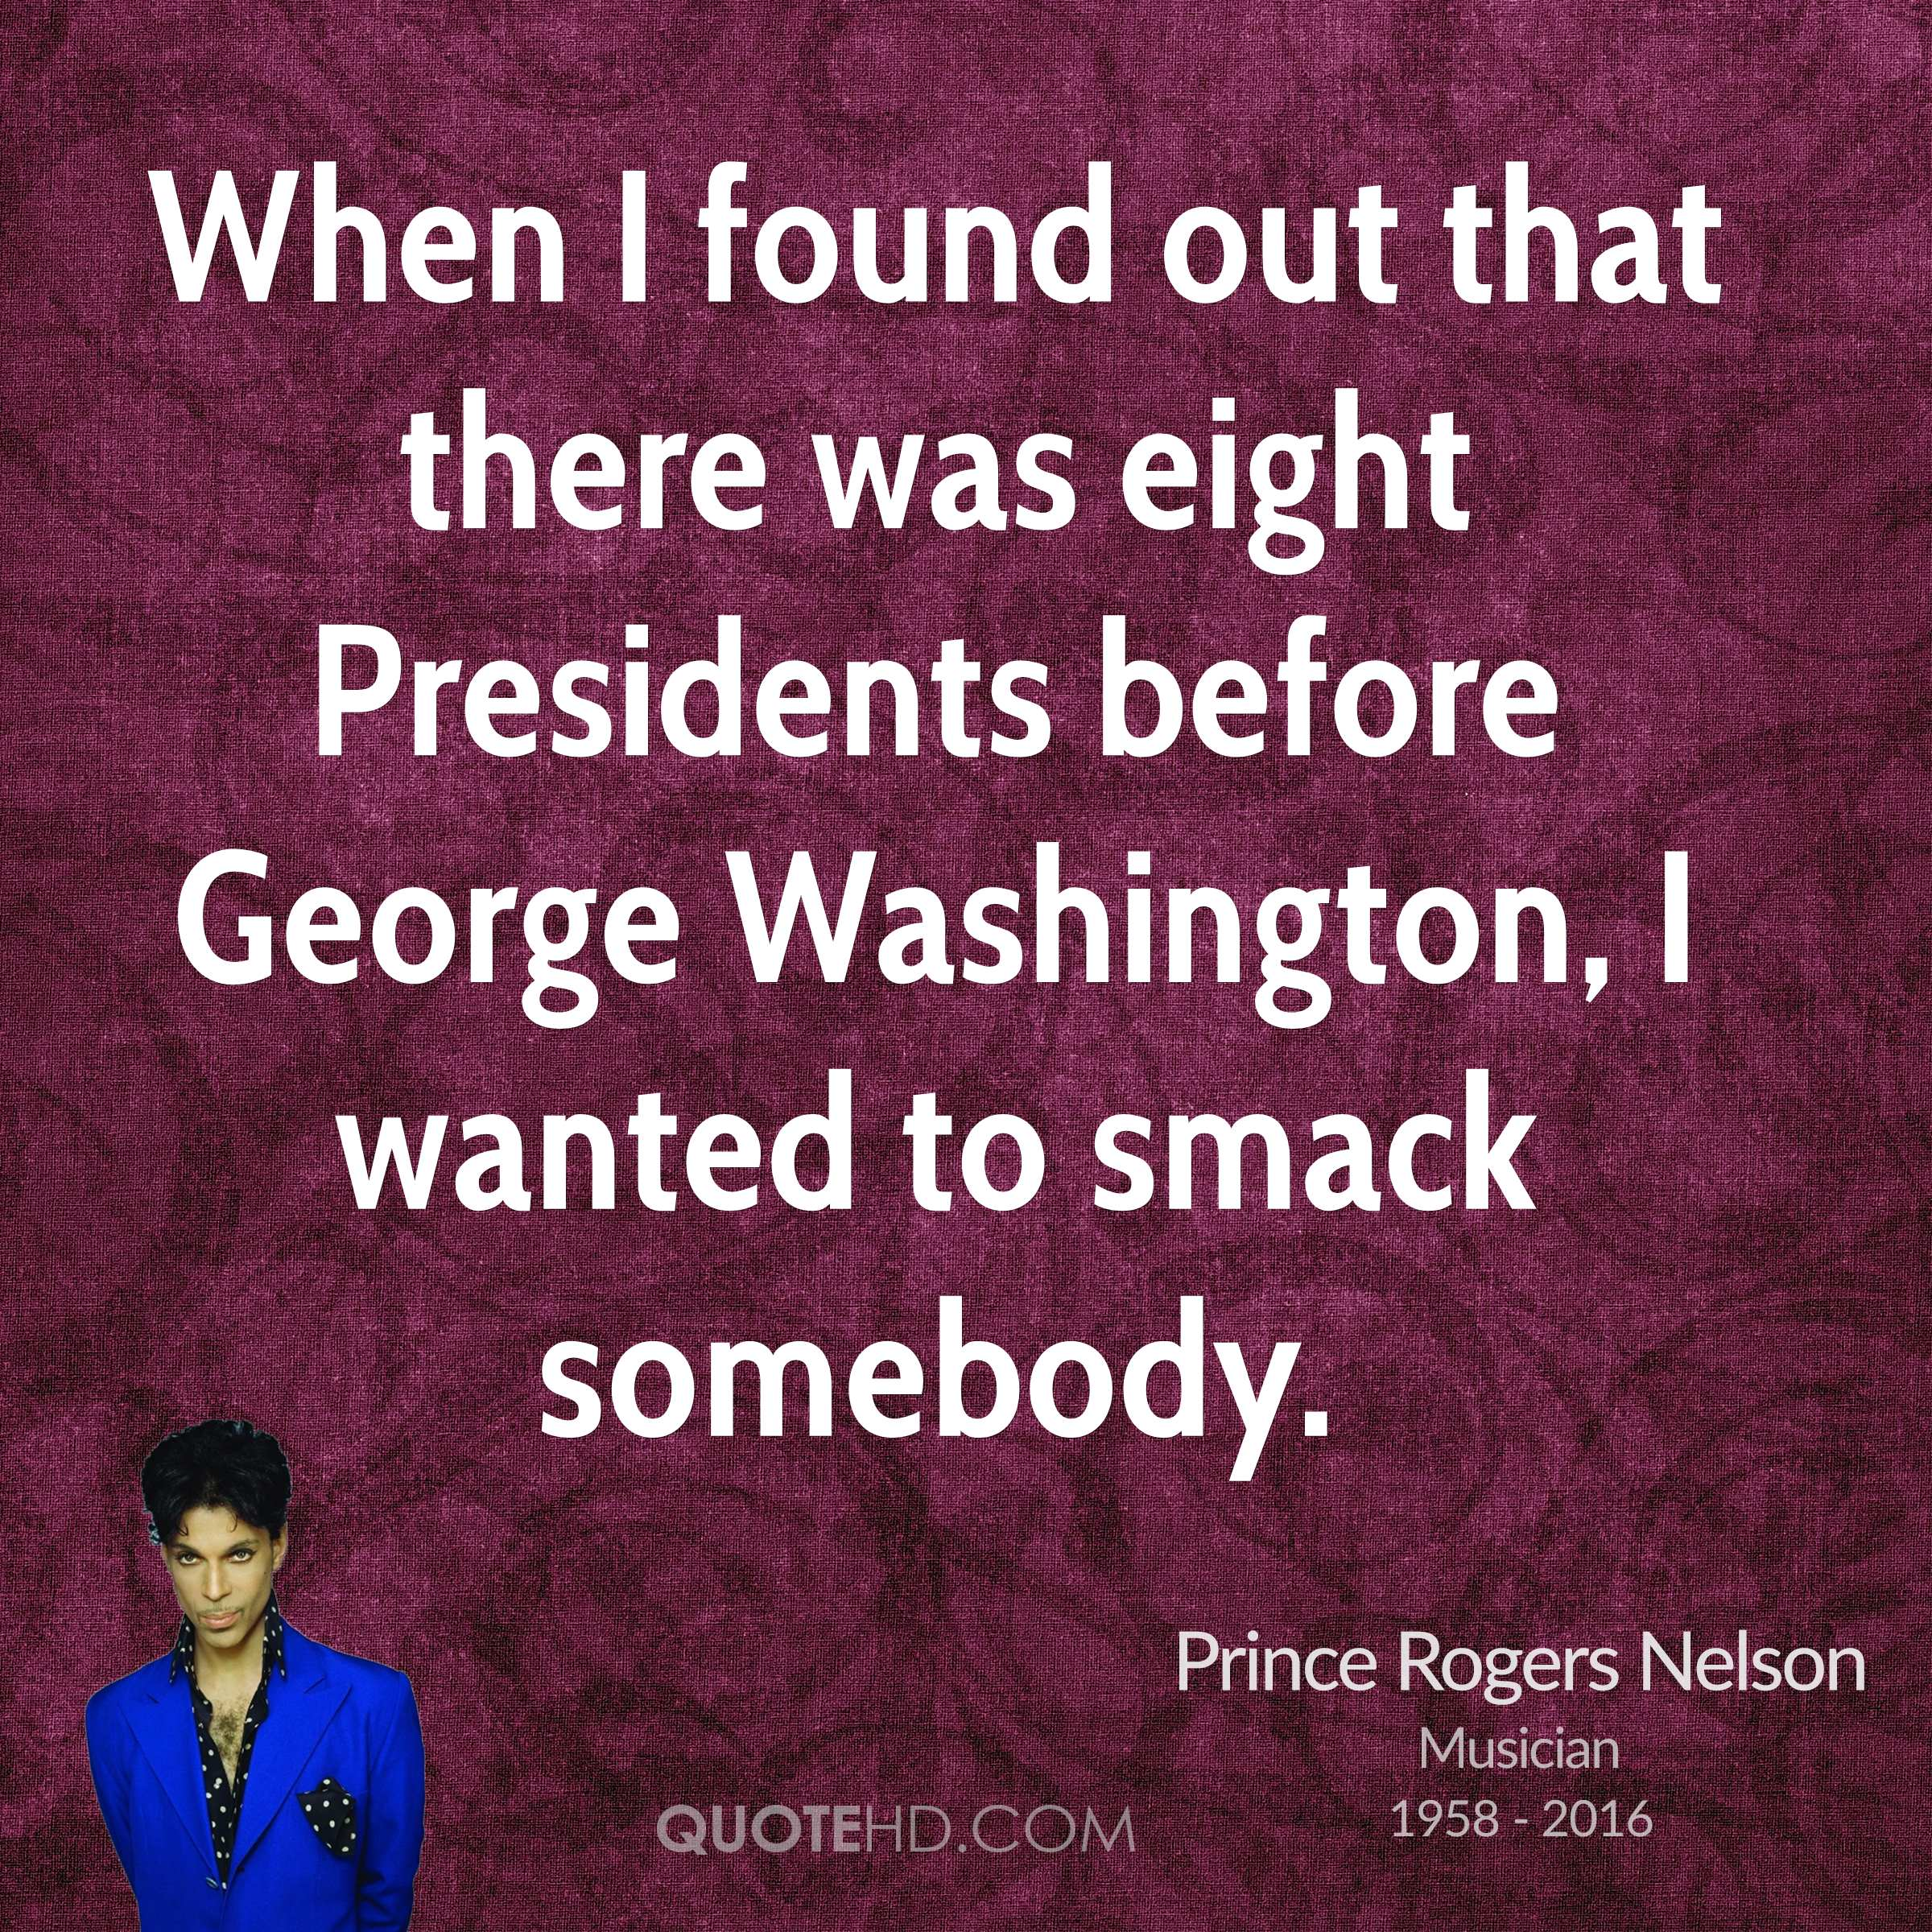 When I found out that there was eight Presidents before George Washington, I wanted to smack somebody.